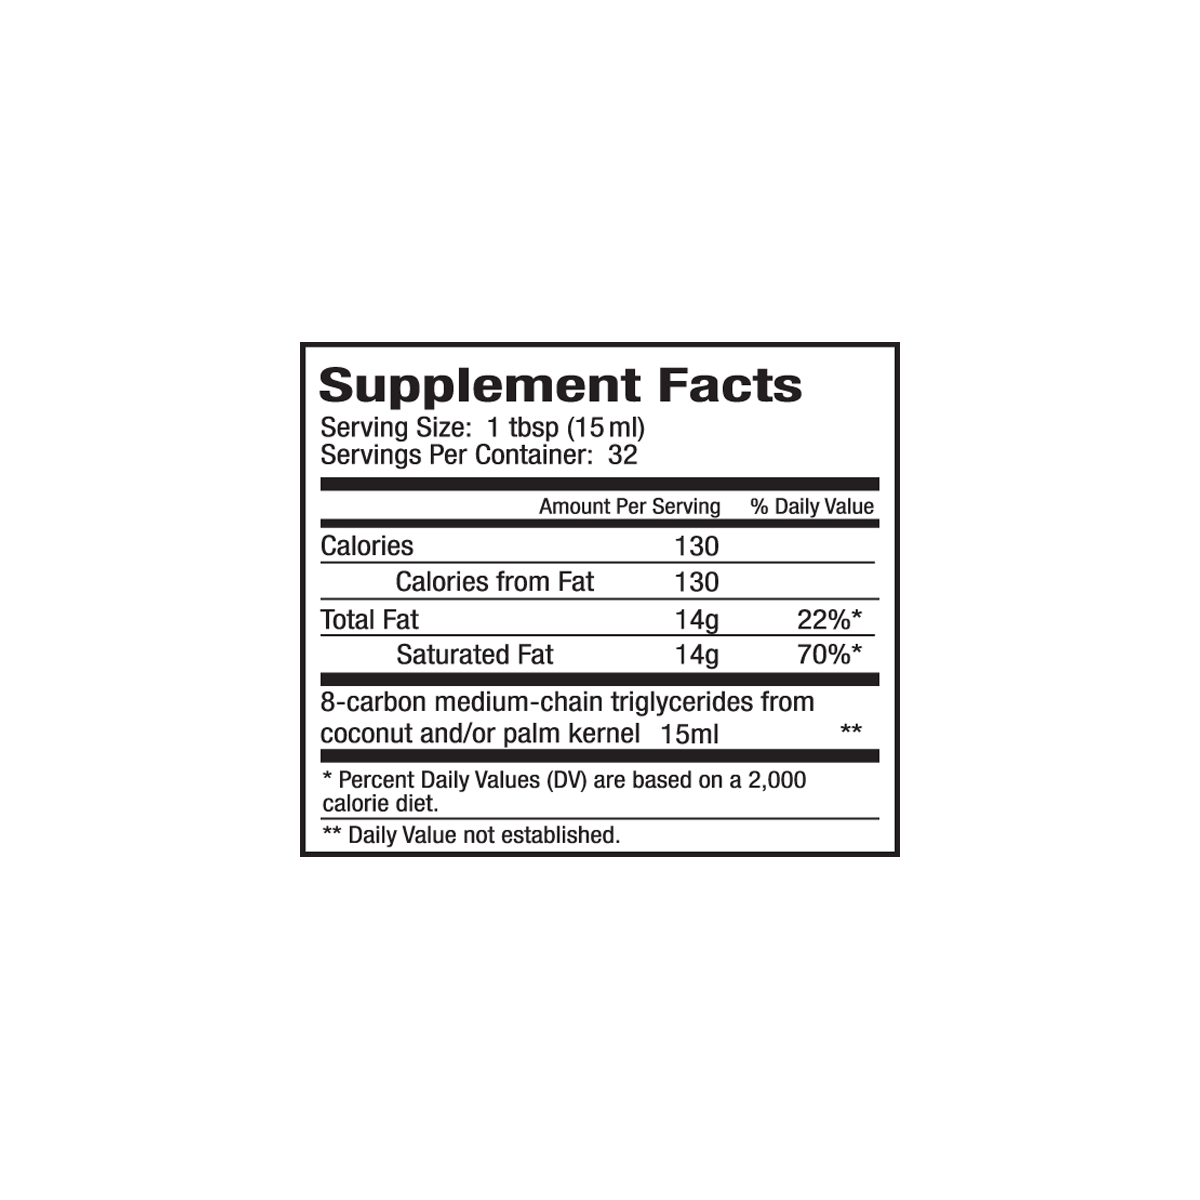 NUTRITION FACTS - SERVING SIZE: 1 TBSP, (15 ml) SERVINGS PER CONTAINER: 64, Amount Per Serving % DV*, CALORIES 129, CALORIES FROM FAT 129, TOTAL FAT 14.3g - 22%, SATURATED FAT 14.3g - 71%, *Percentage Daily Values are based on a 2,000 calorie diet. Your daily values may be higher or lower depending on your calorie needs: Total Fat, w/ Daily Calories: 2,000 = 65g, w/ Daily Calories: 2,500 = 80g. Sat Fat, w/ Daily Calories: 2,000 = 20g, w/ Daily Calories: 2,500 = 25g